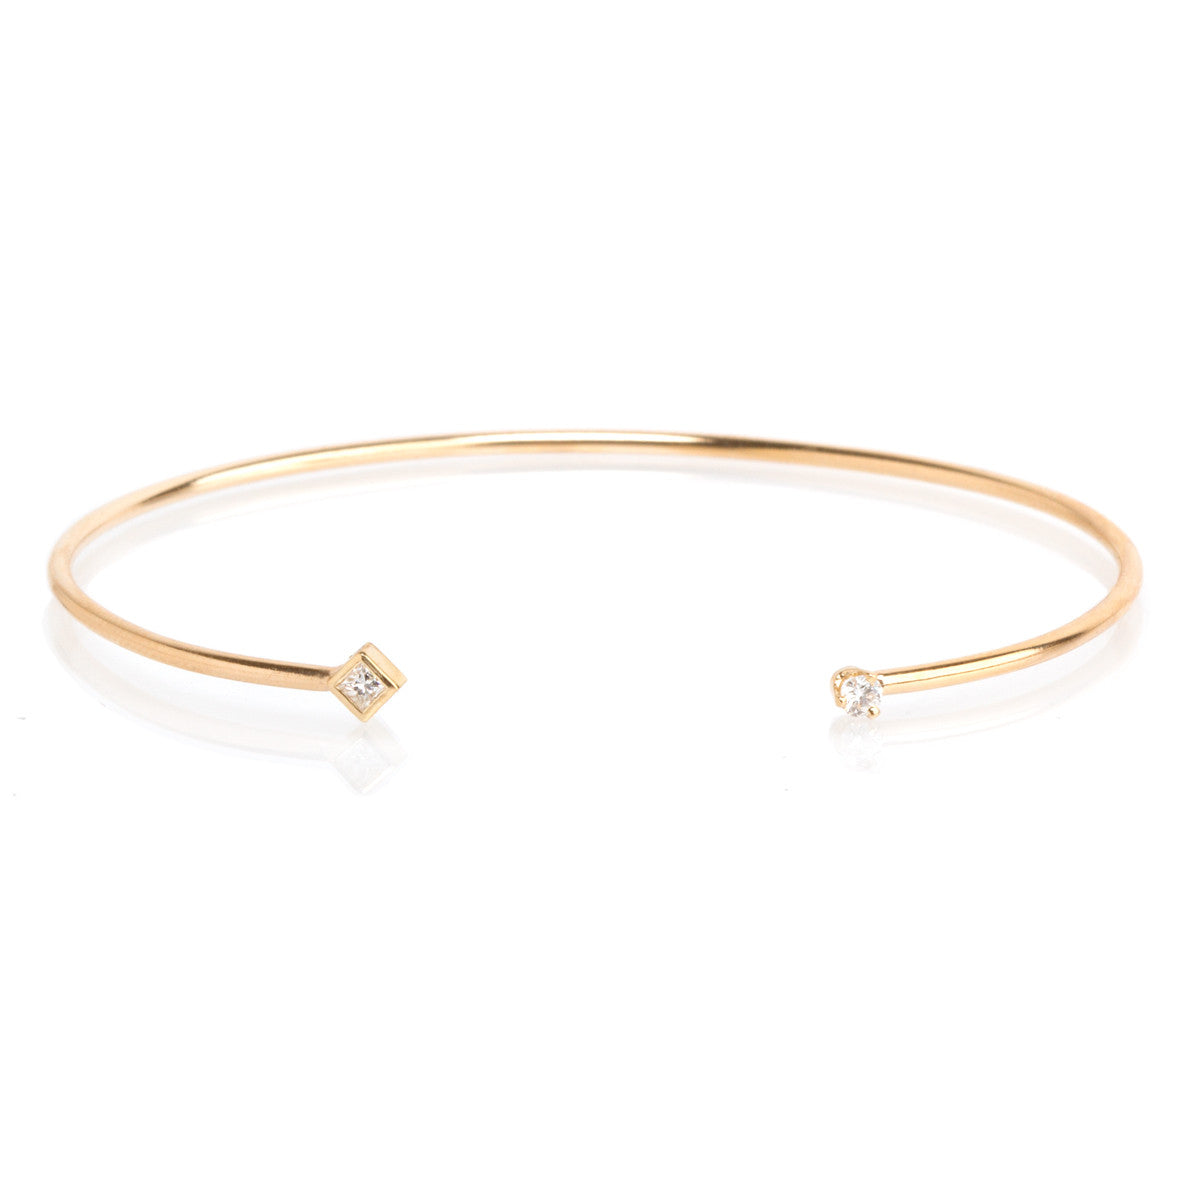 diamonds designs brilliant in bangle nl gold for featuring white diamond jewelry thin bracelets of bangles bracelet open wg women